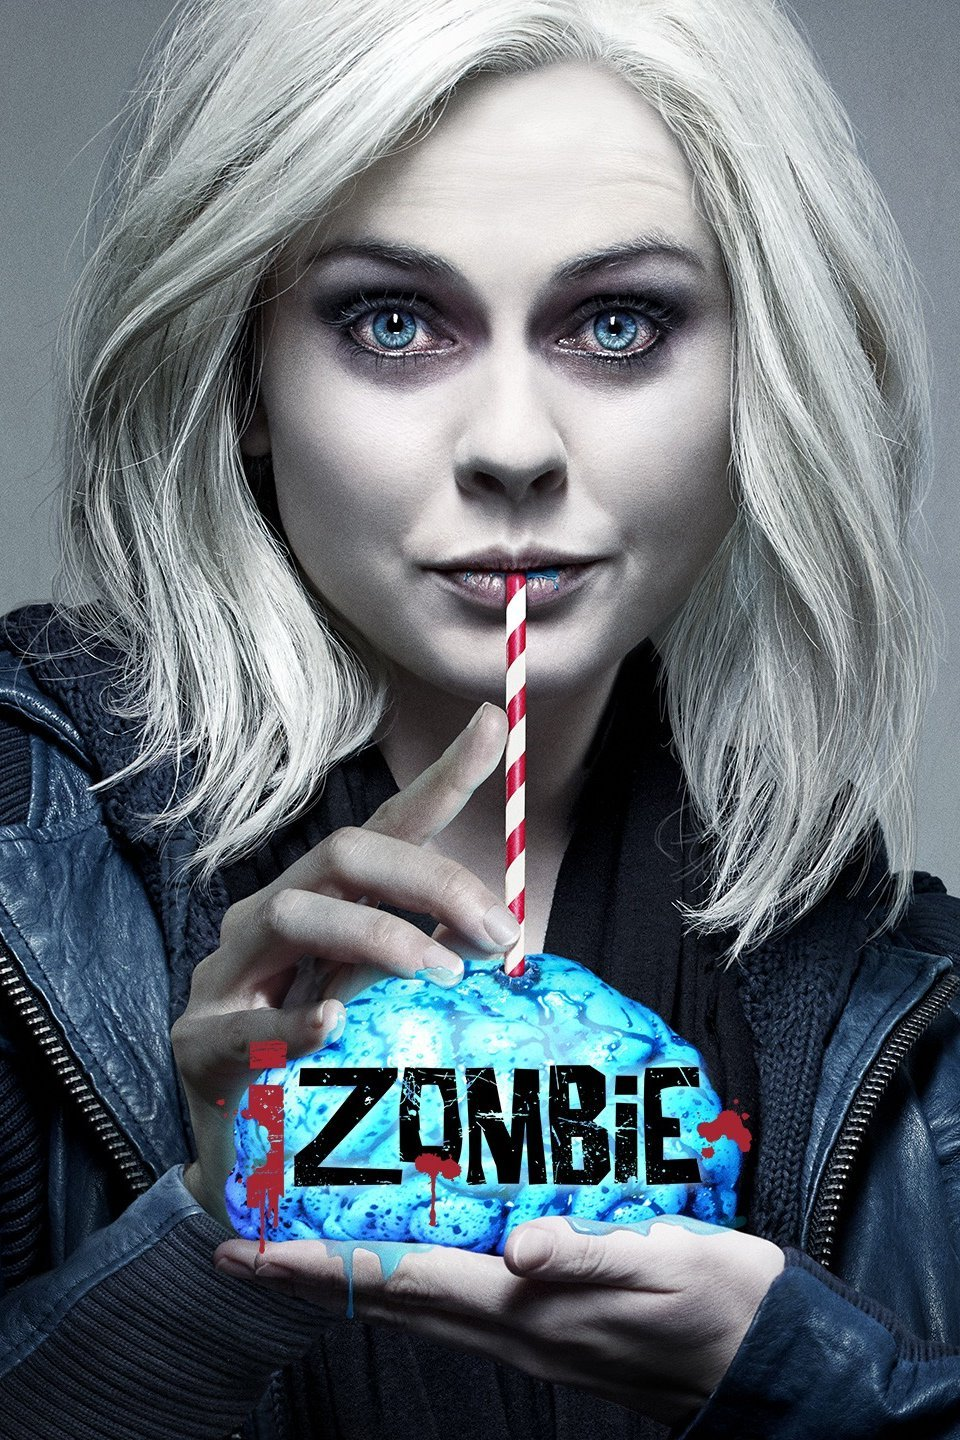 iZombie Season 1 Episode 13 Download WebRip 480p & 720p